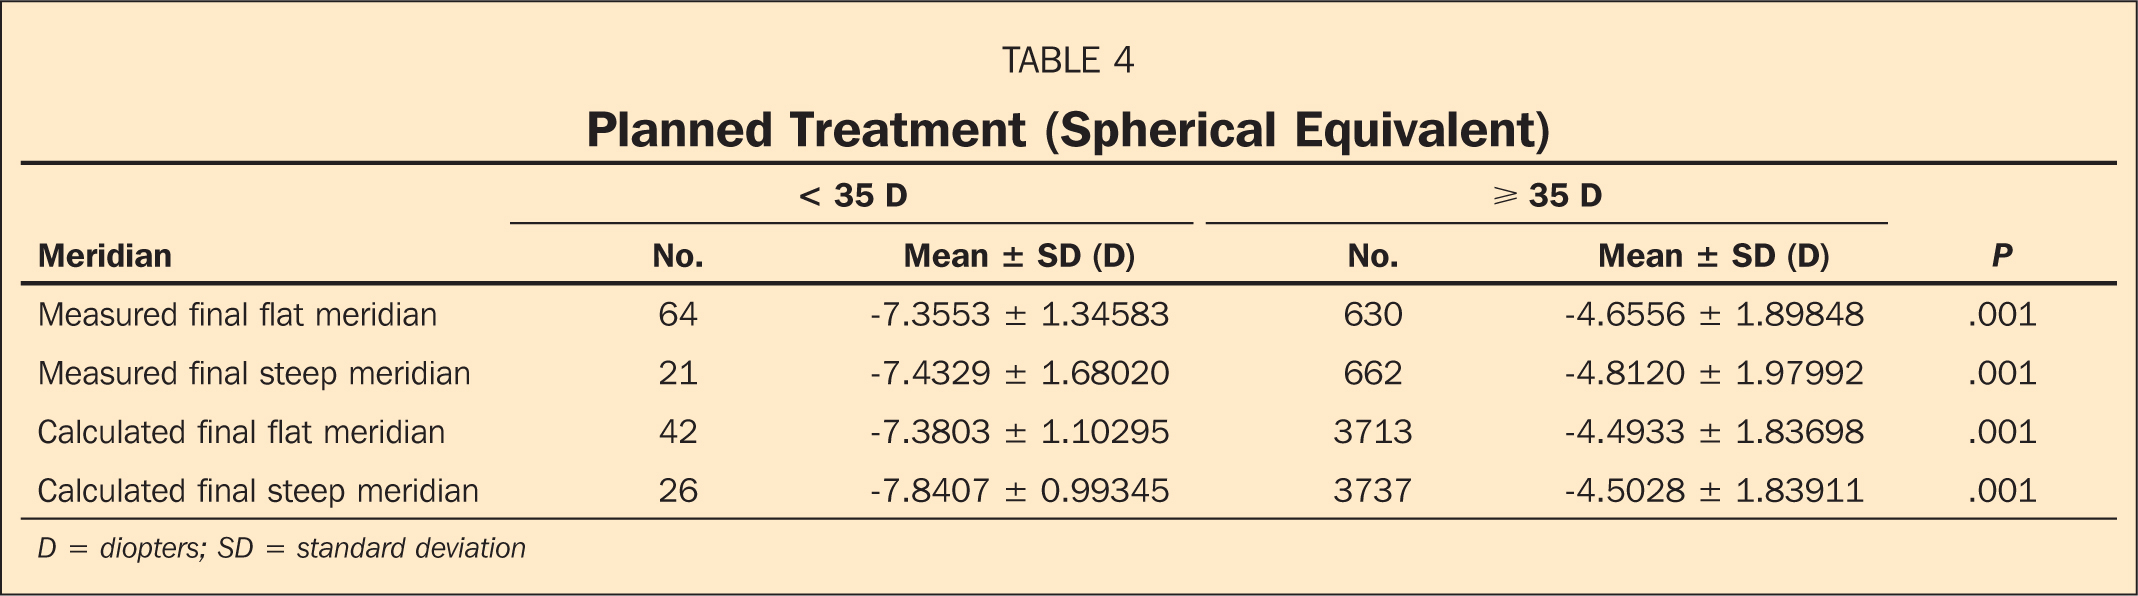 Planned Treatment (Spherical Equivalent)